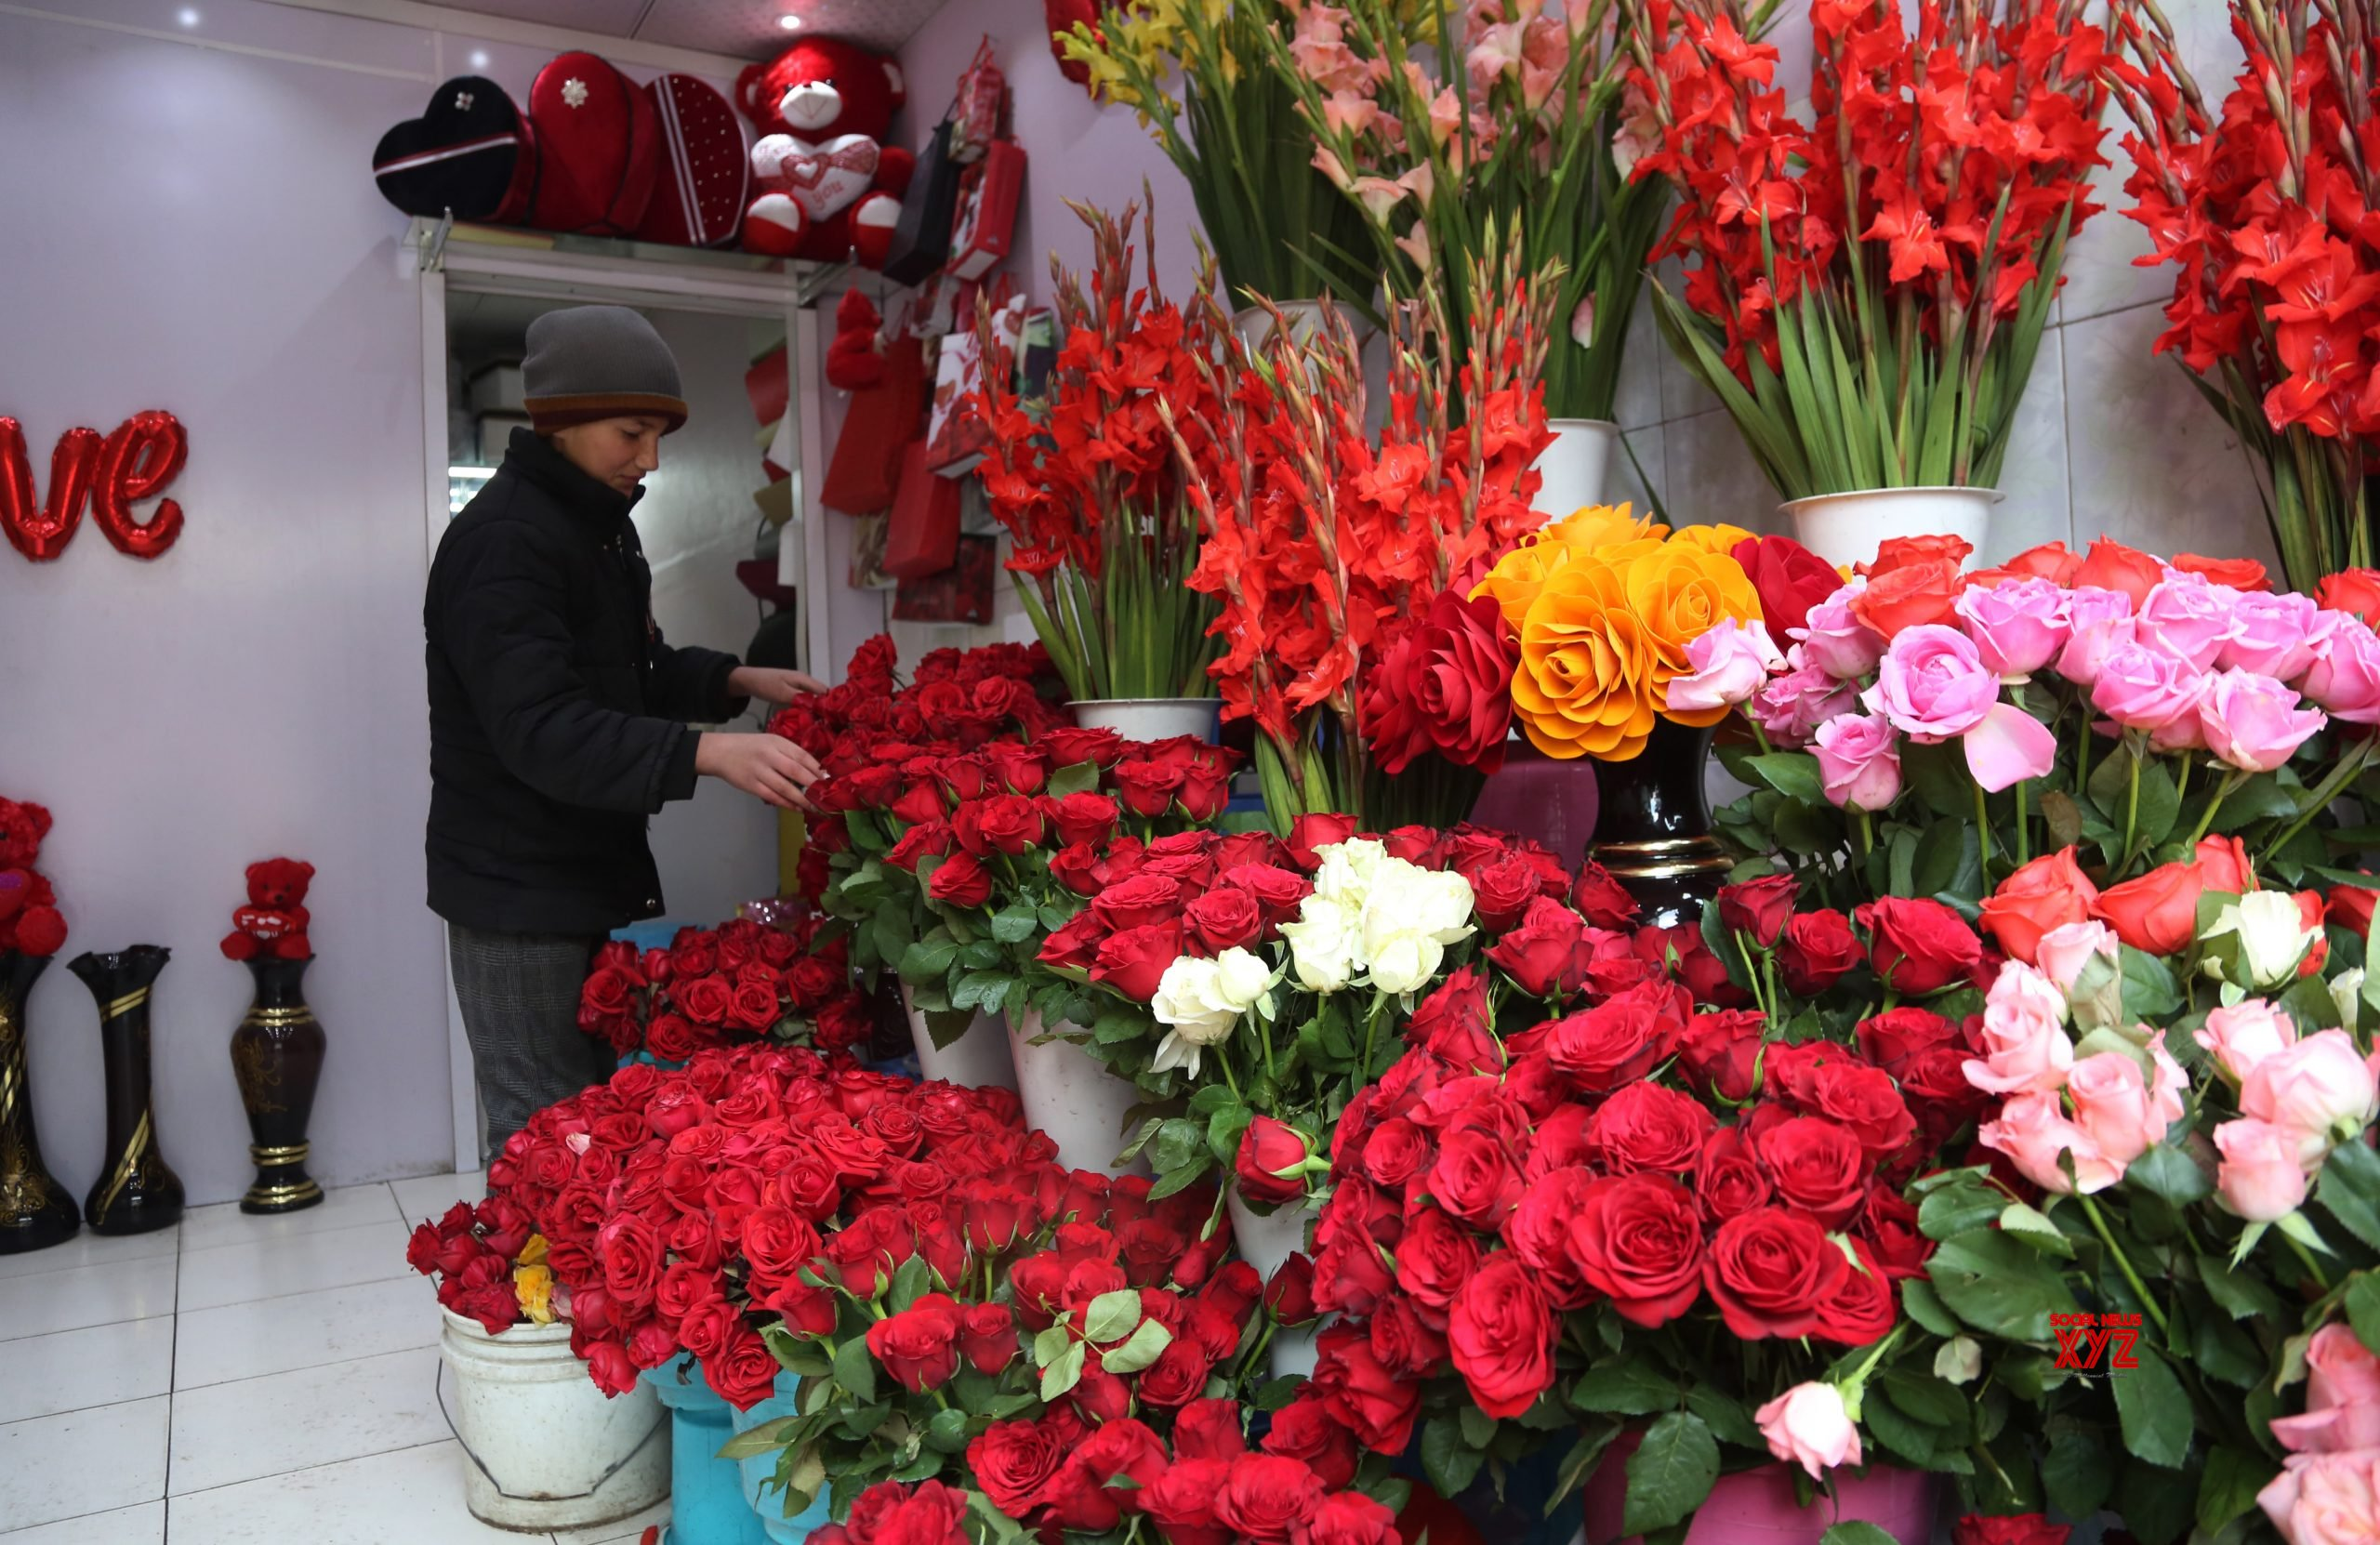 AFGHANISTAN - KABUL - VALENTINE'S DAY #Gallery